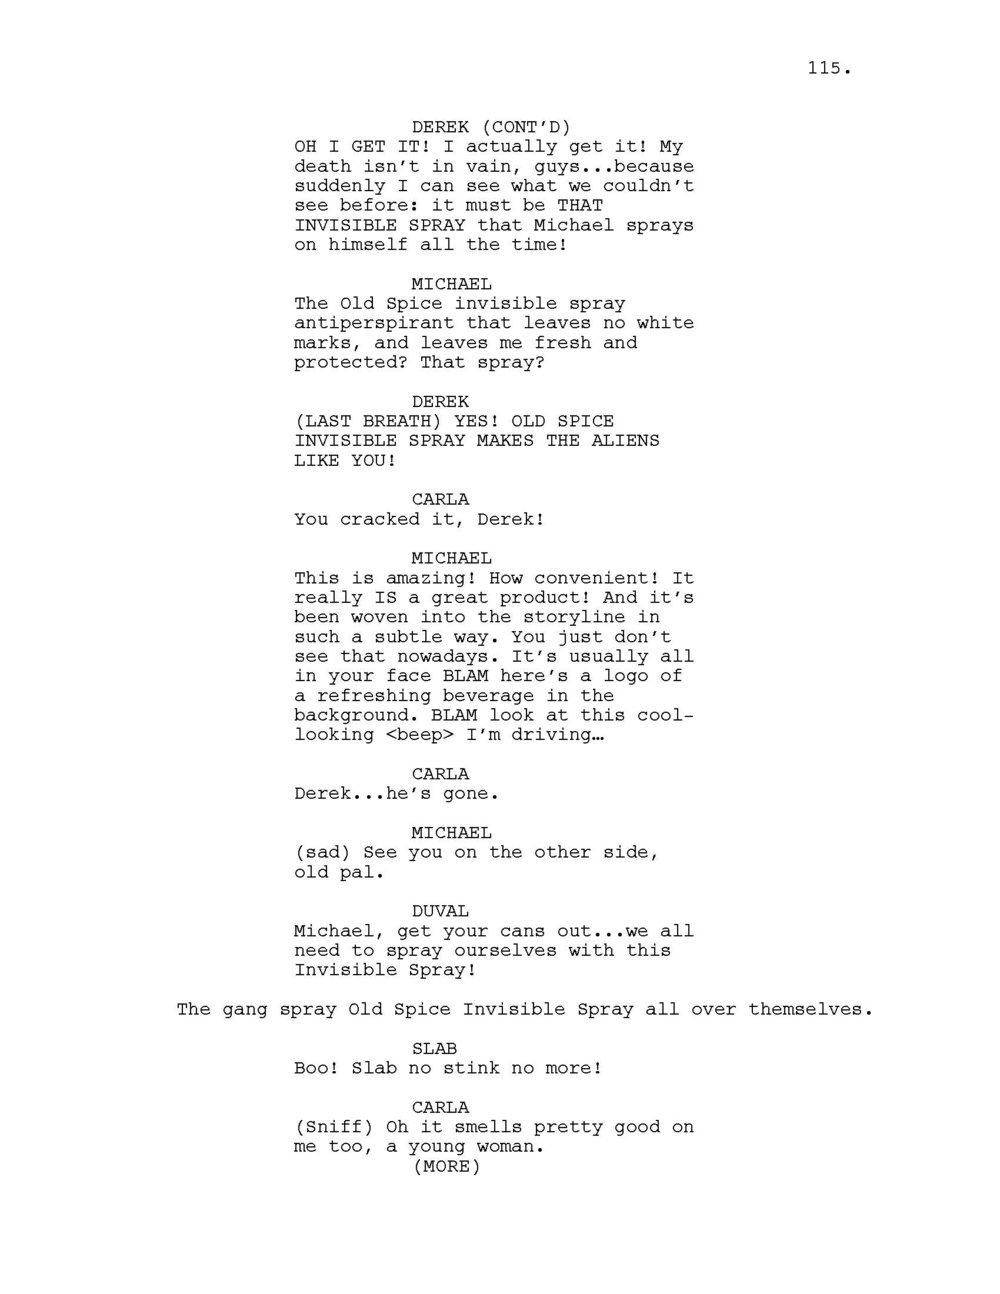 INVISIBLE WORLD SCRIPT_Page_116.jpg